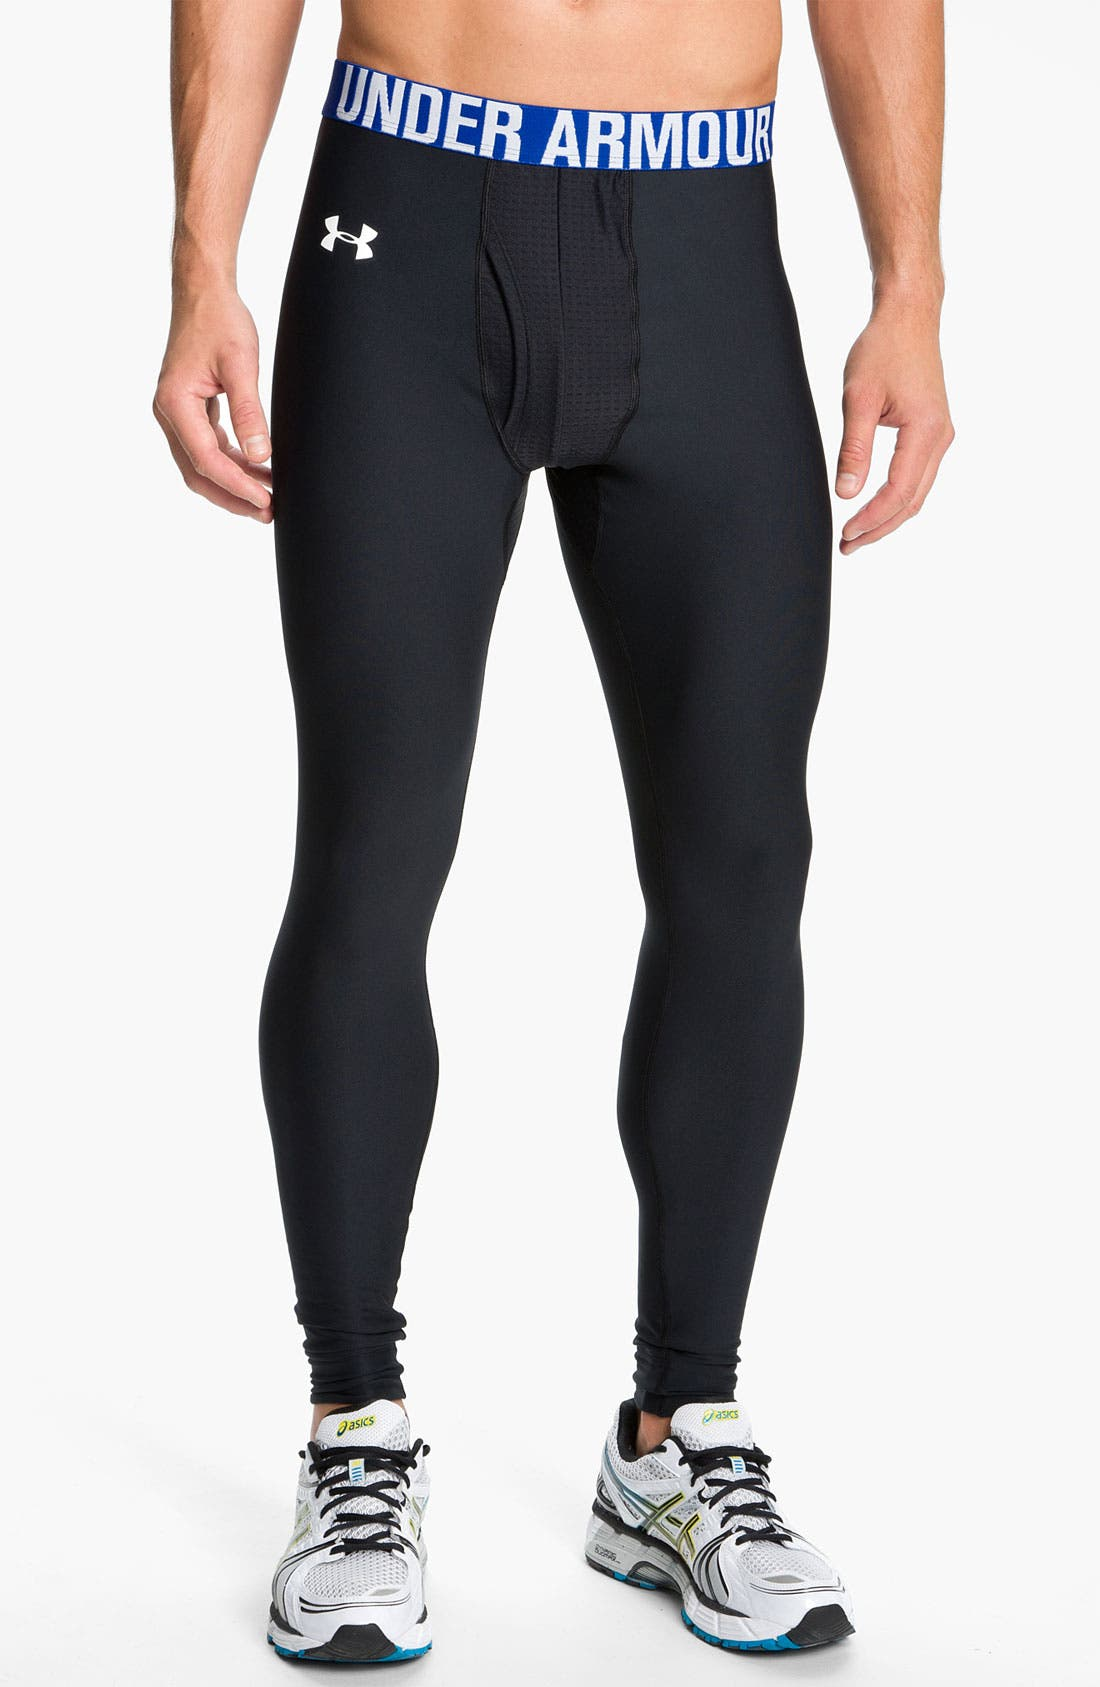 Alternate Image 1 Selected - Under Armour 'Evo' ColdGear® Leggings (Online Exclusive)